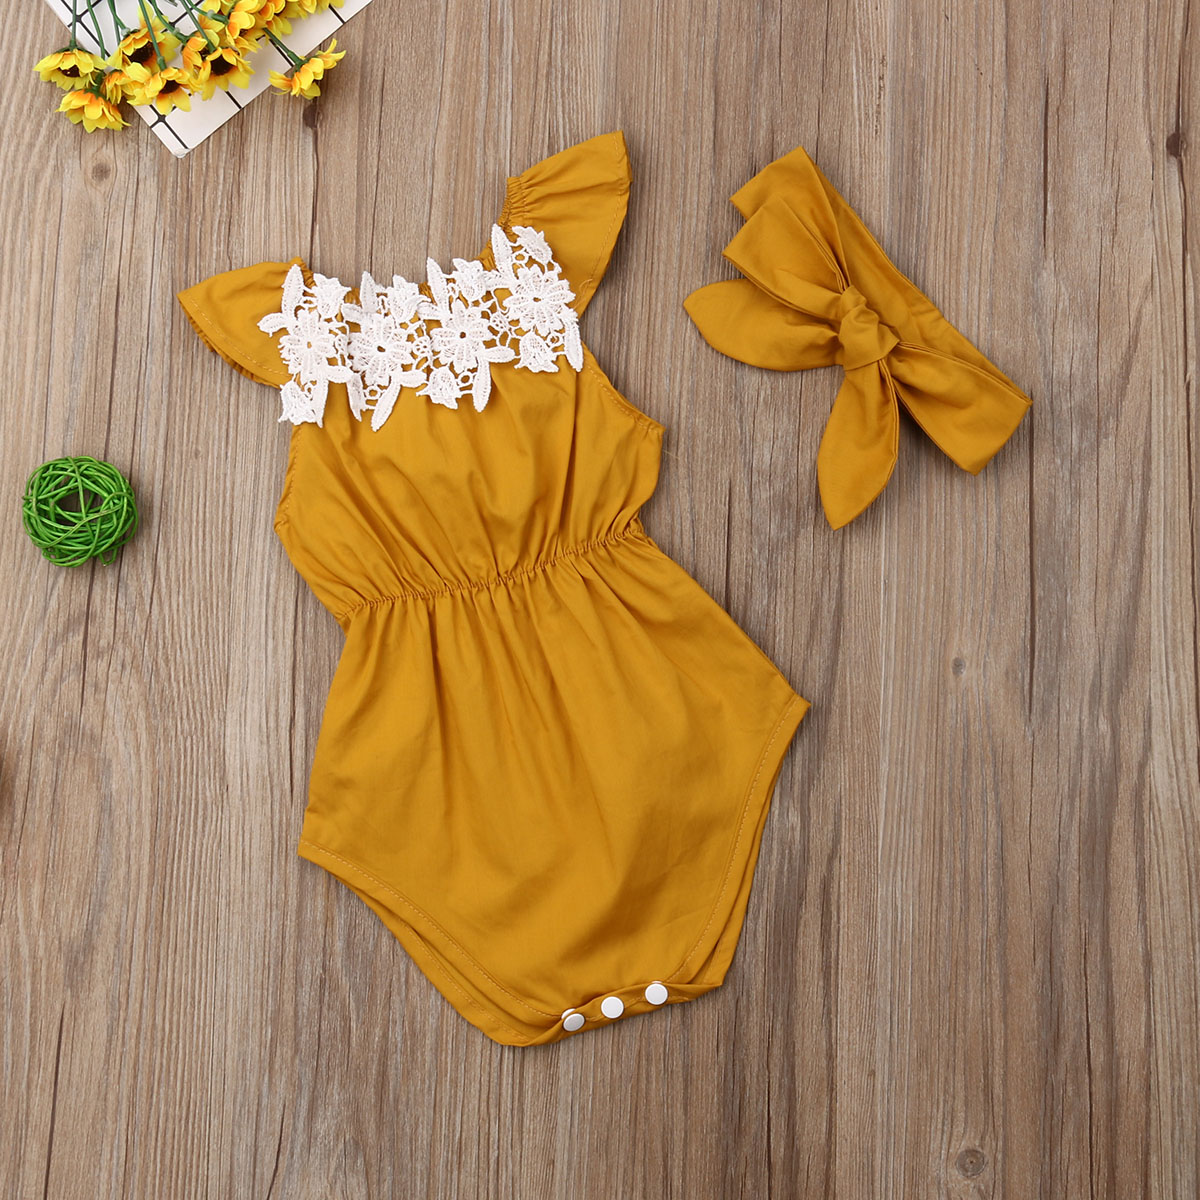 Newborn Baby Girls Clothes Round Neck Ruffle Sleeveless Cotton Lovely Bodysuit Pineapple Print Kids Toddler Tops one Pieces